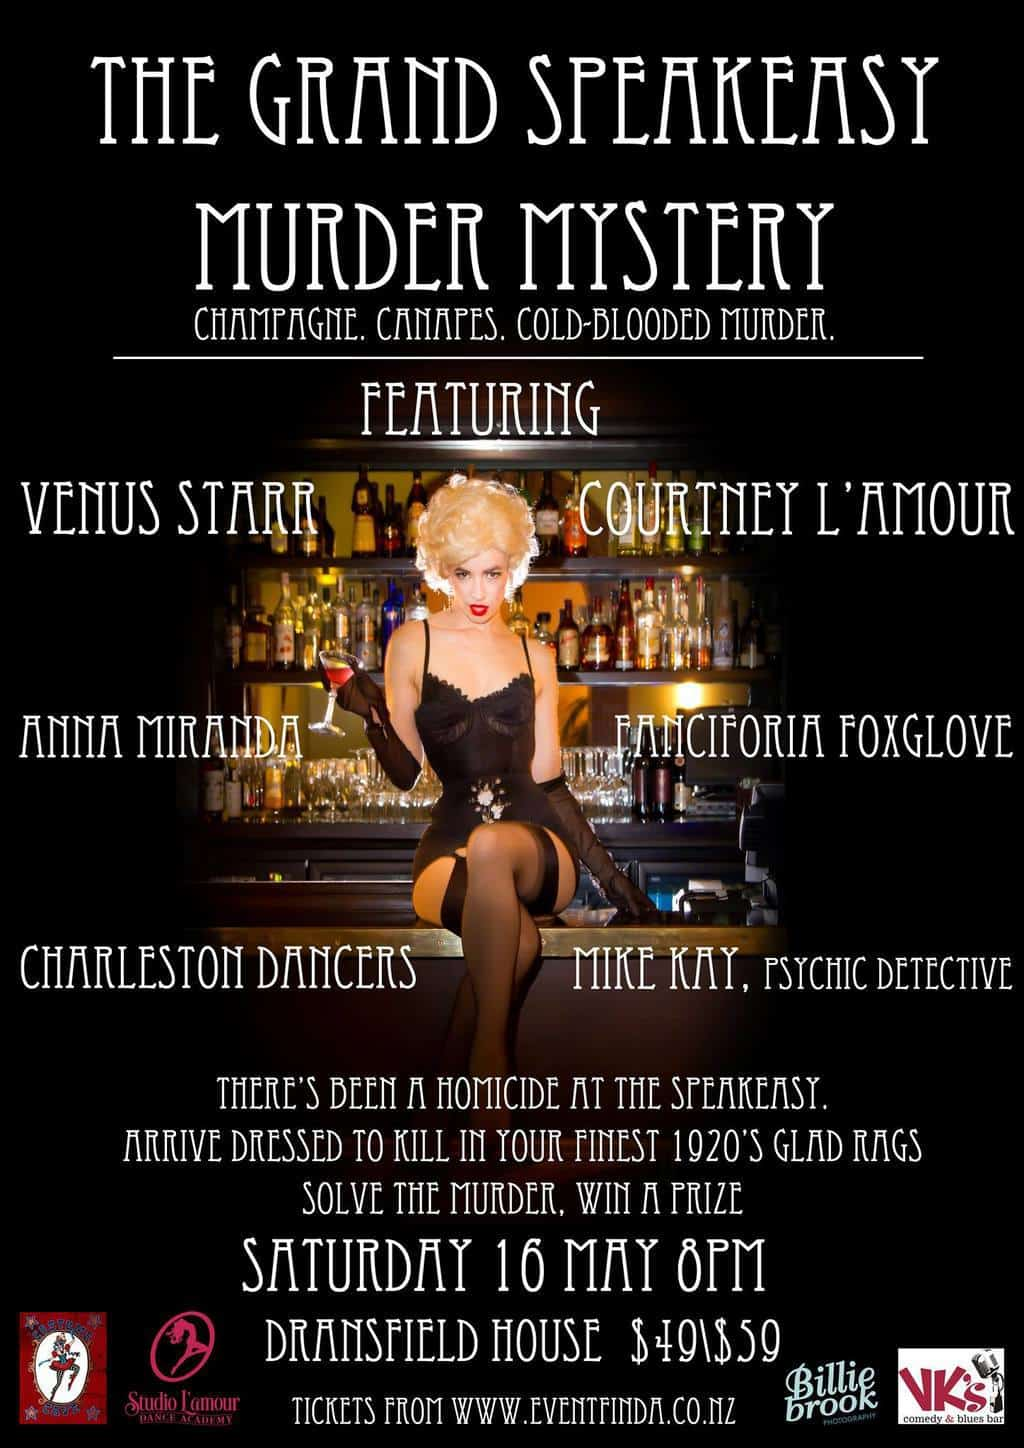 The Grand Speakeasy Murder Mystery